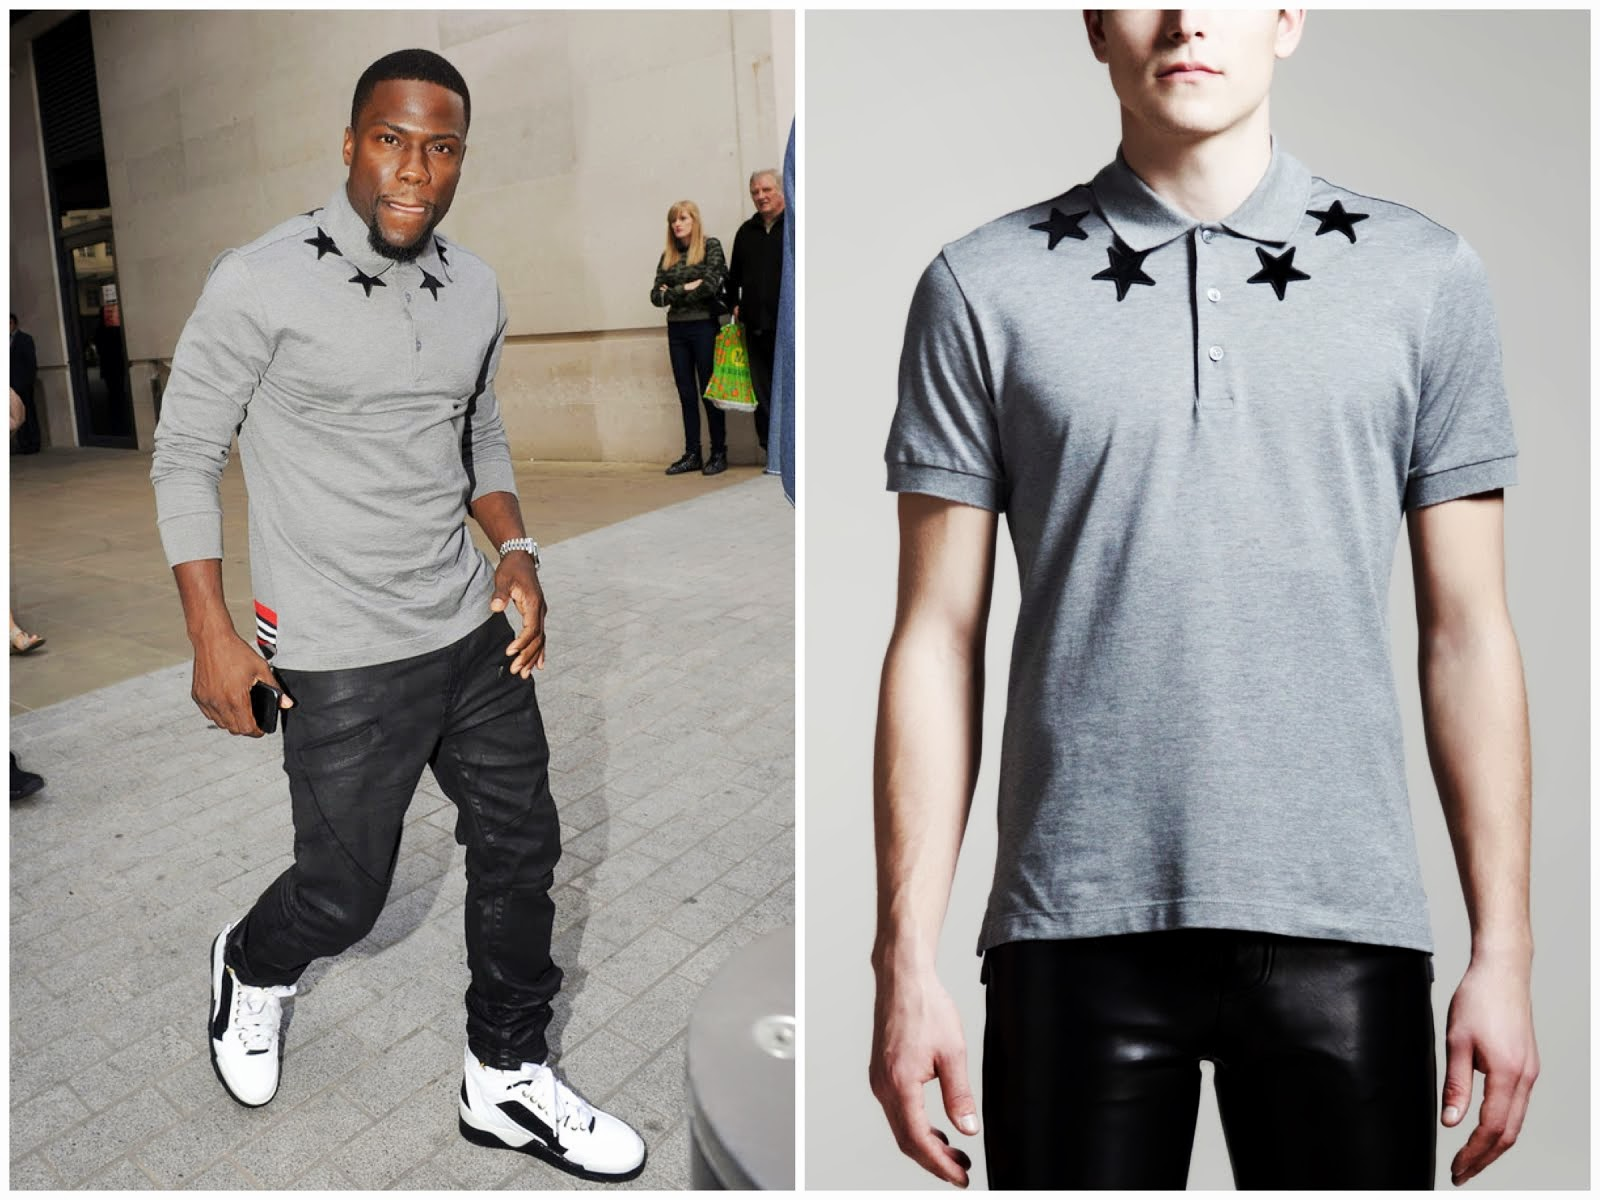 00O00 Menswear Blog: Kevin Hart in Givenchy - BBC Radio One Studios in London August 2013